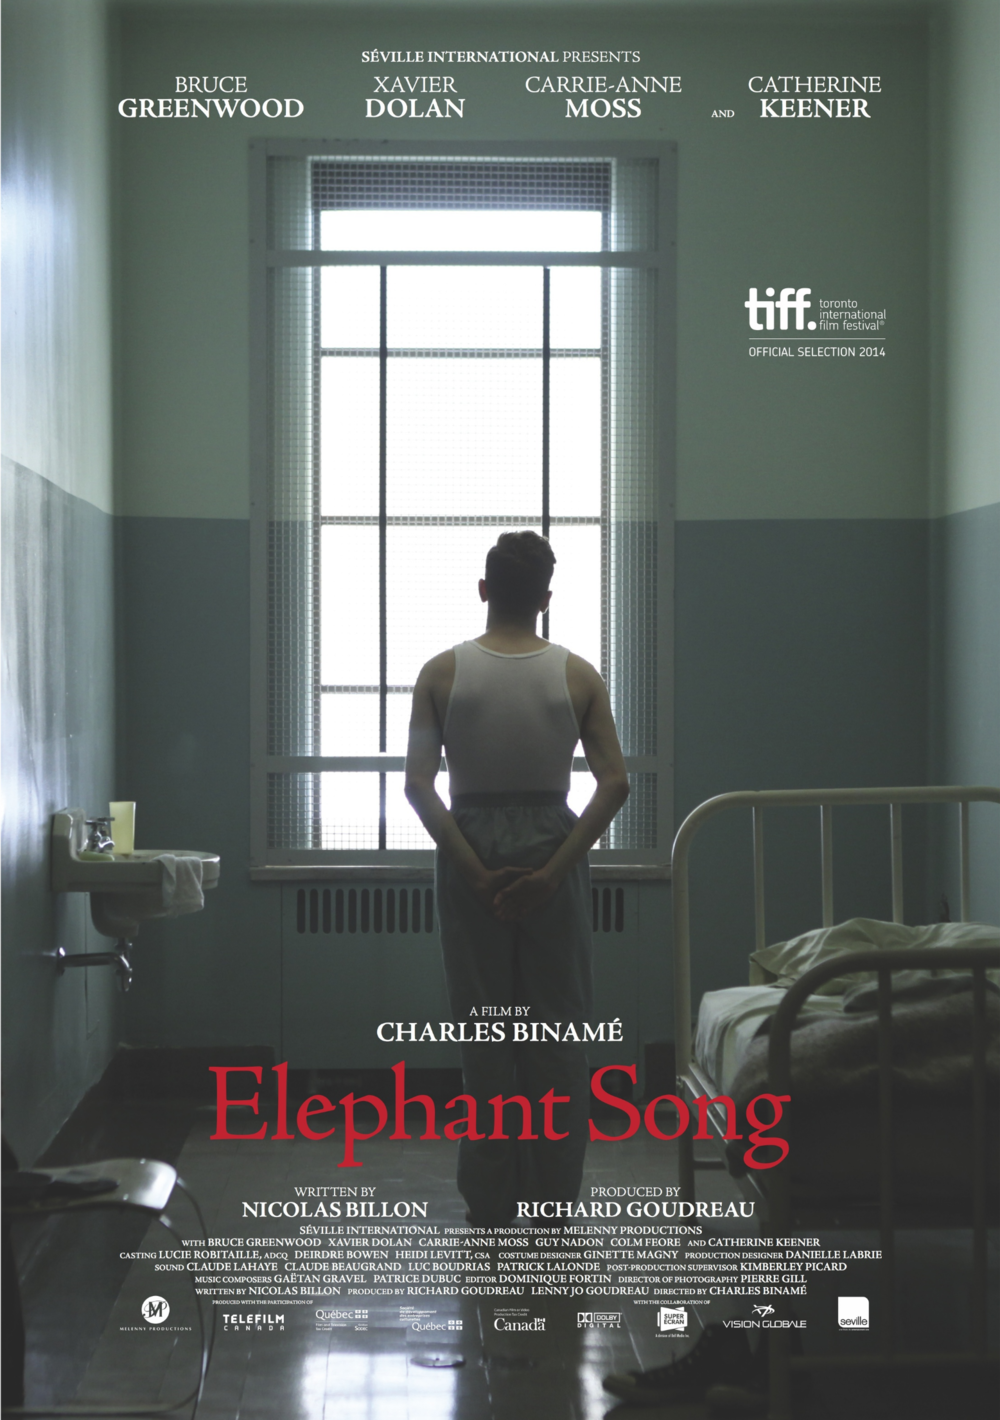 Elephant song art